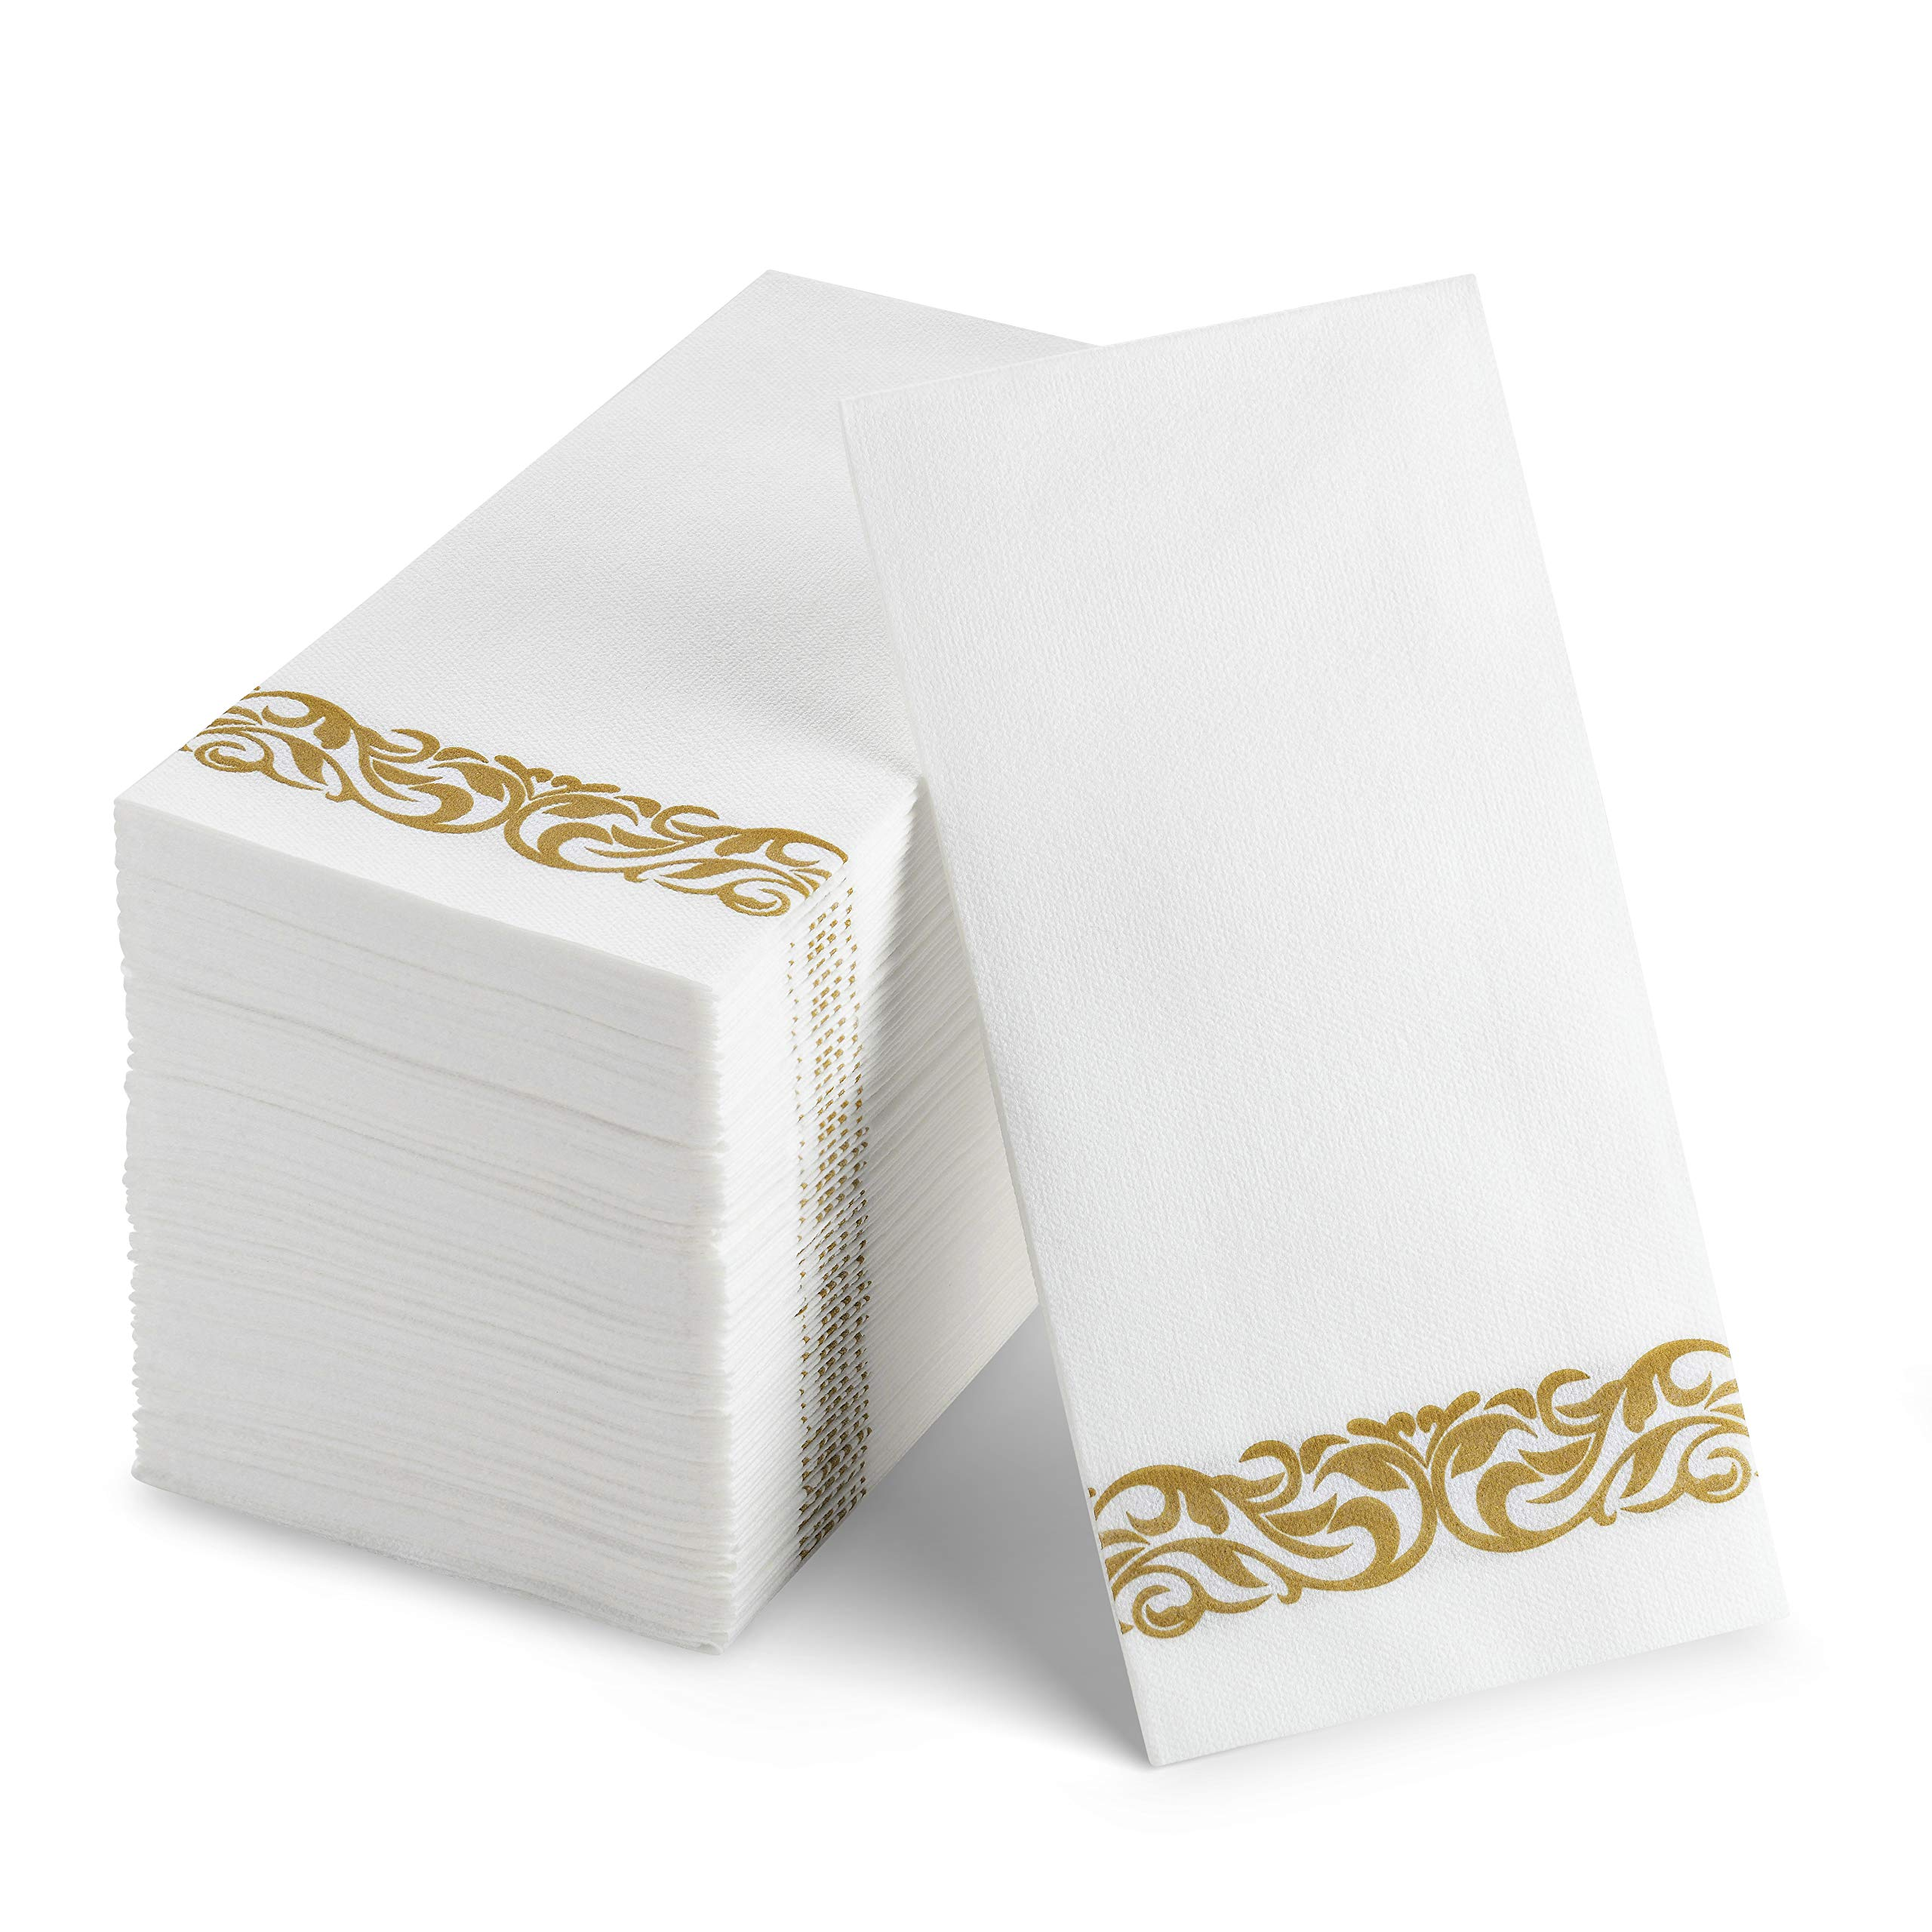 100 Disposable Guest Towels Soft and Absorbent Linen-Feel Paper Hand Towels Durable Decorative Bathroom Hand Napkins Good for Kitchen, Parties, Weddings, Dinners or Events White and Gold by Munfix